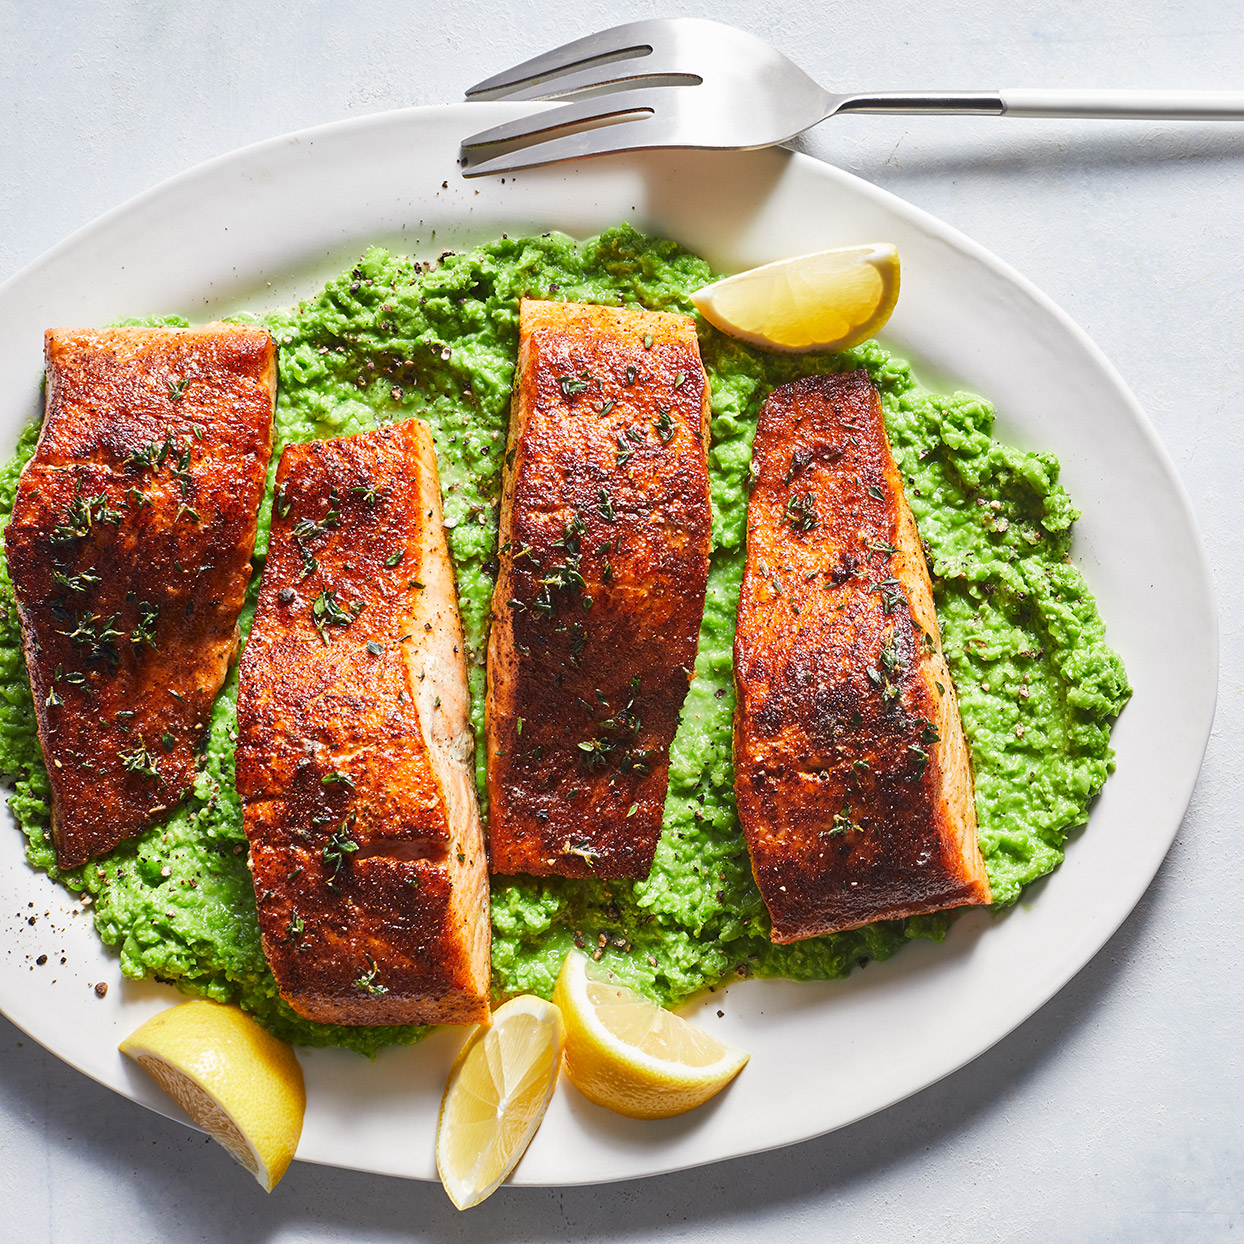 Cooking butter until it browns adds a toasty, nutty flavor to this easy skillet salmon recipe. Here it gives Old Bay-rubbed salmon a chef-worthy finish--not bad for 20 minutes! Source: EatingWell Magazine, March 2020